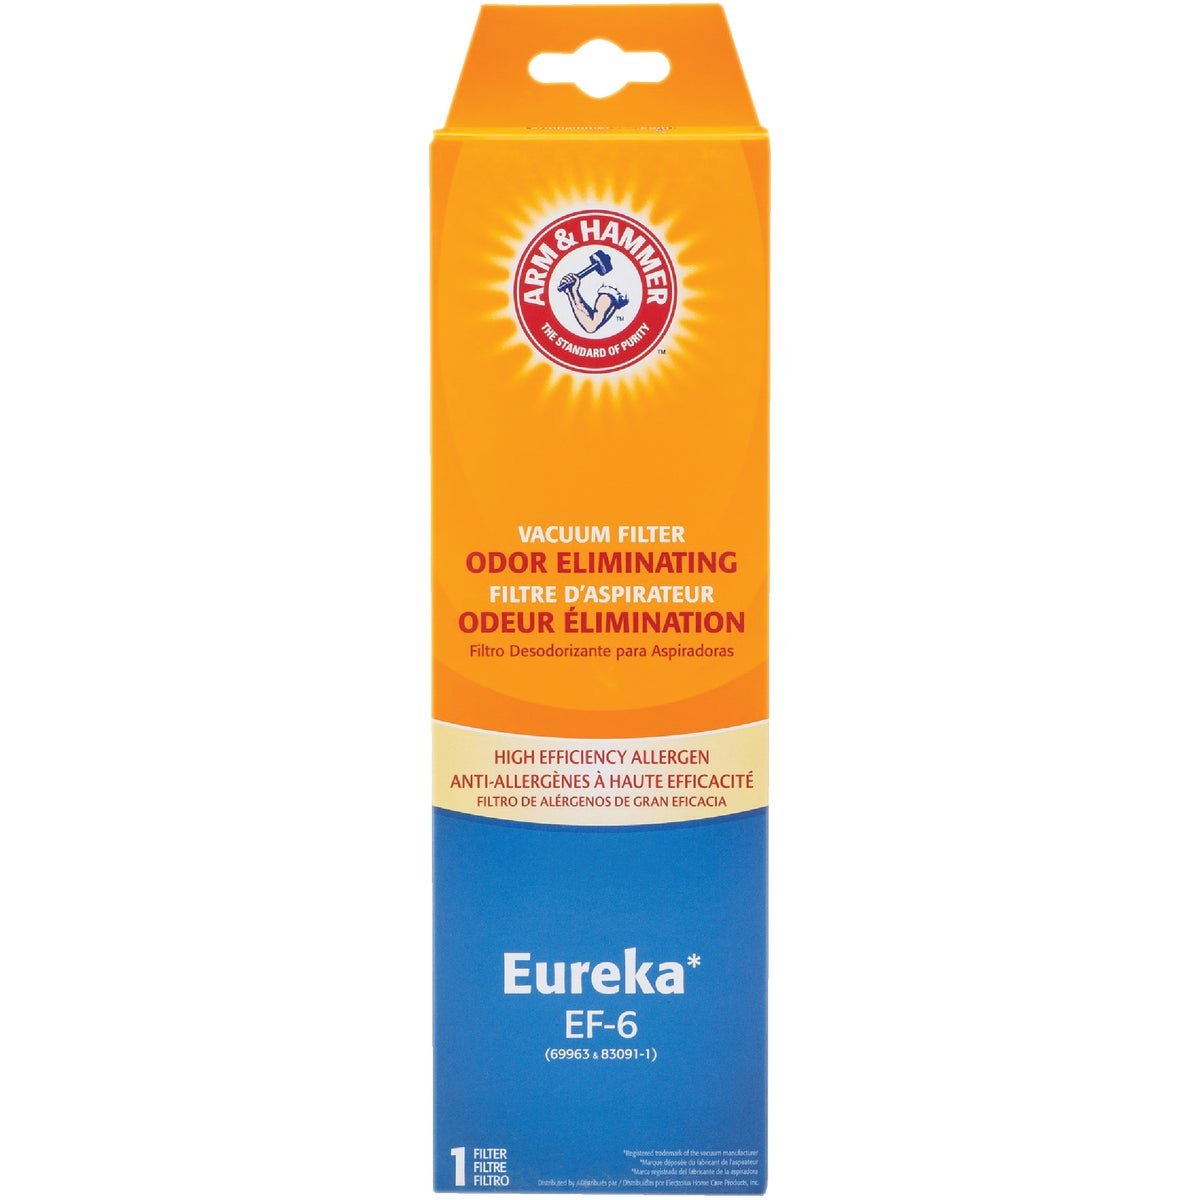 EUREKA EF-6 FILTER - 67826-4 by Electrolux Home Care